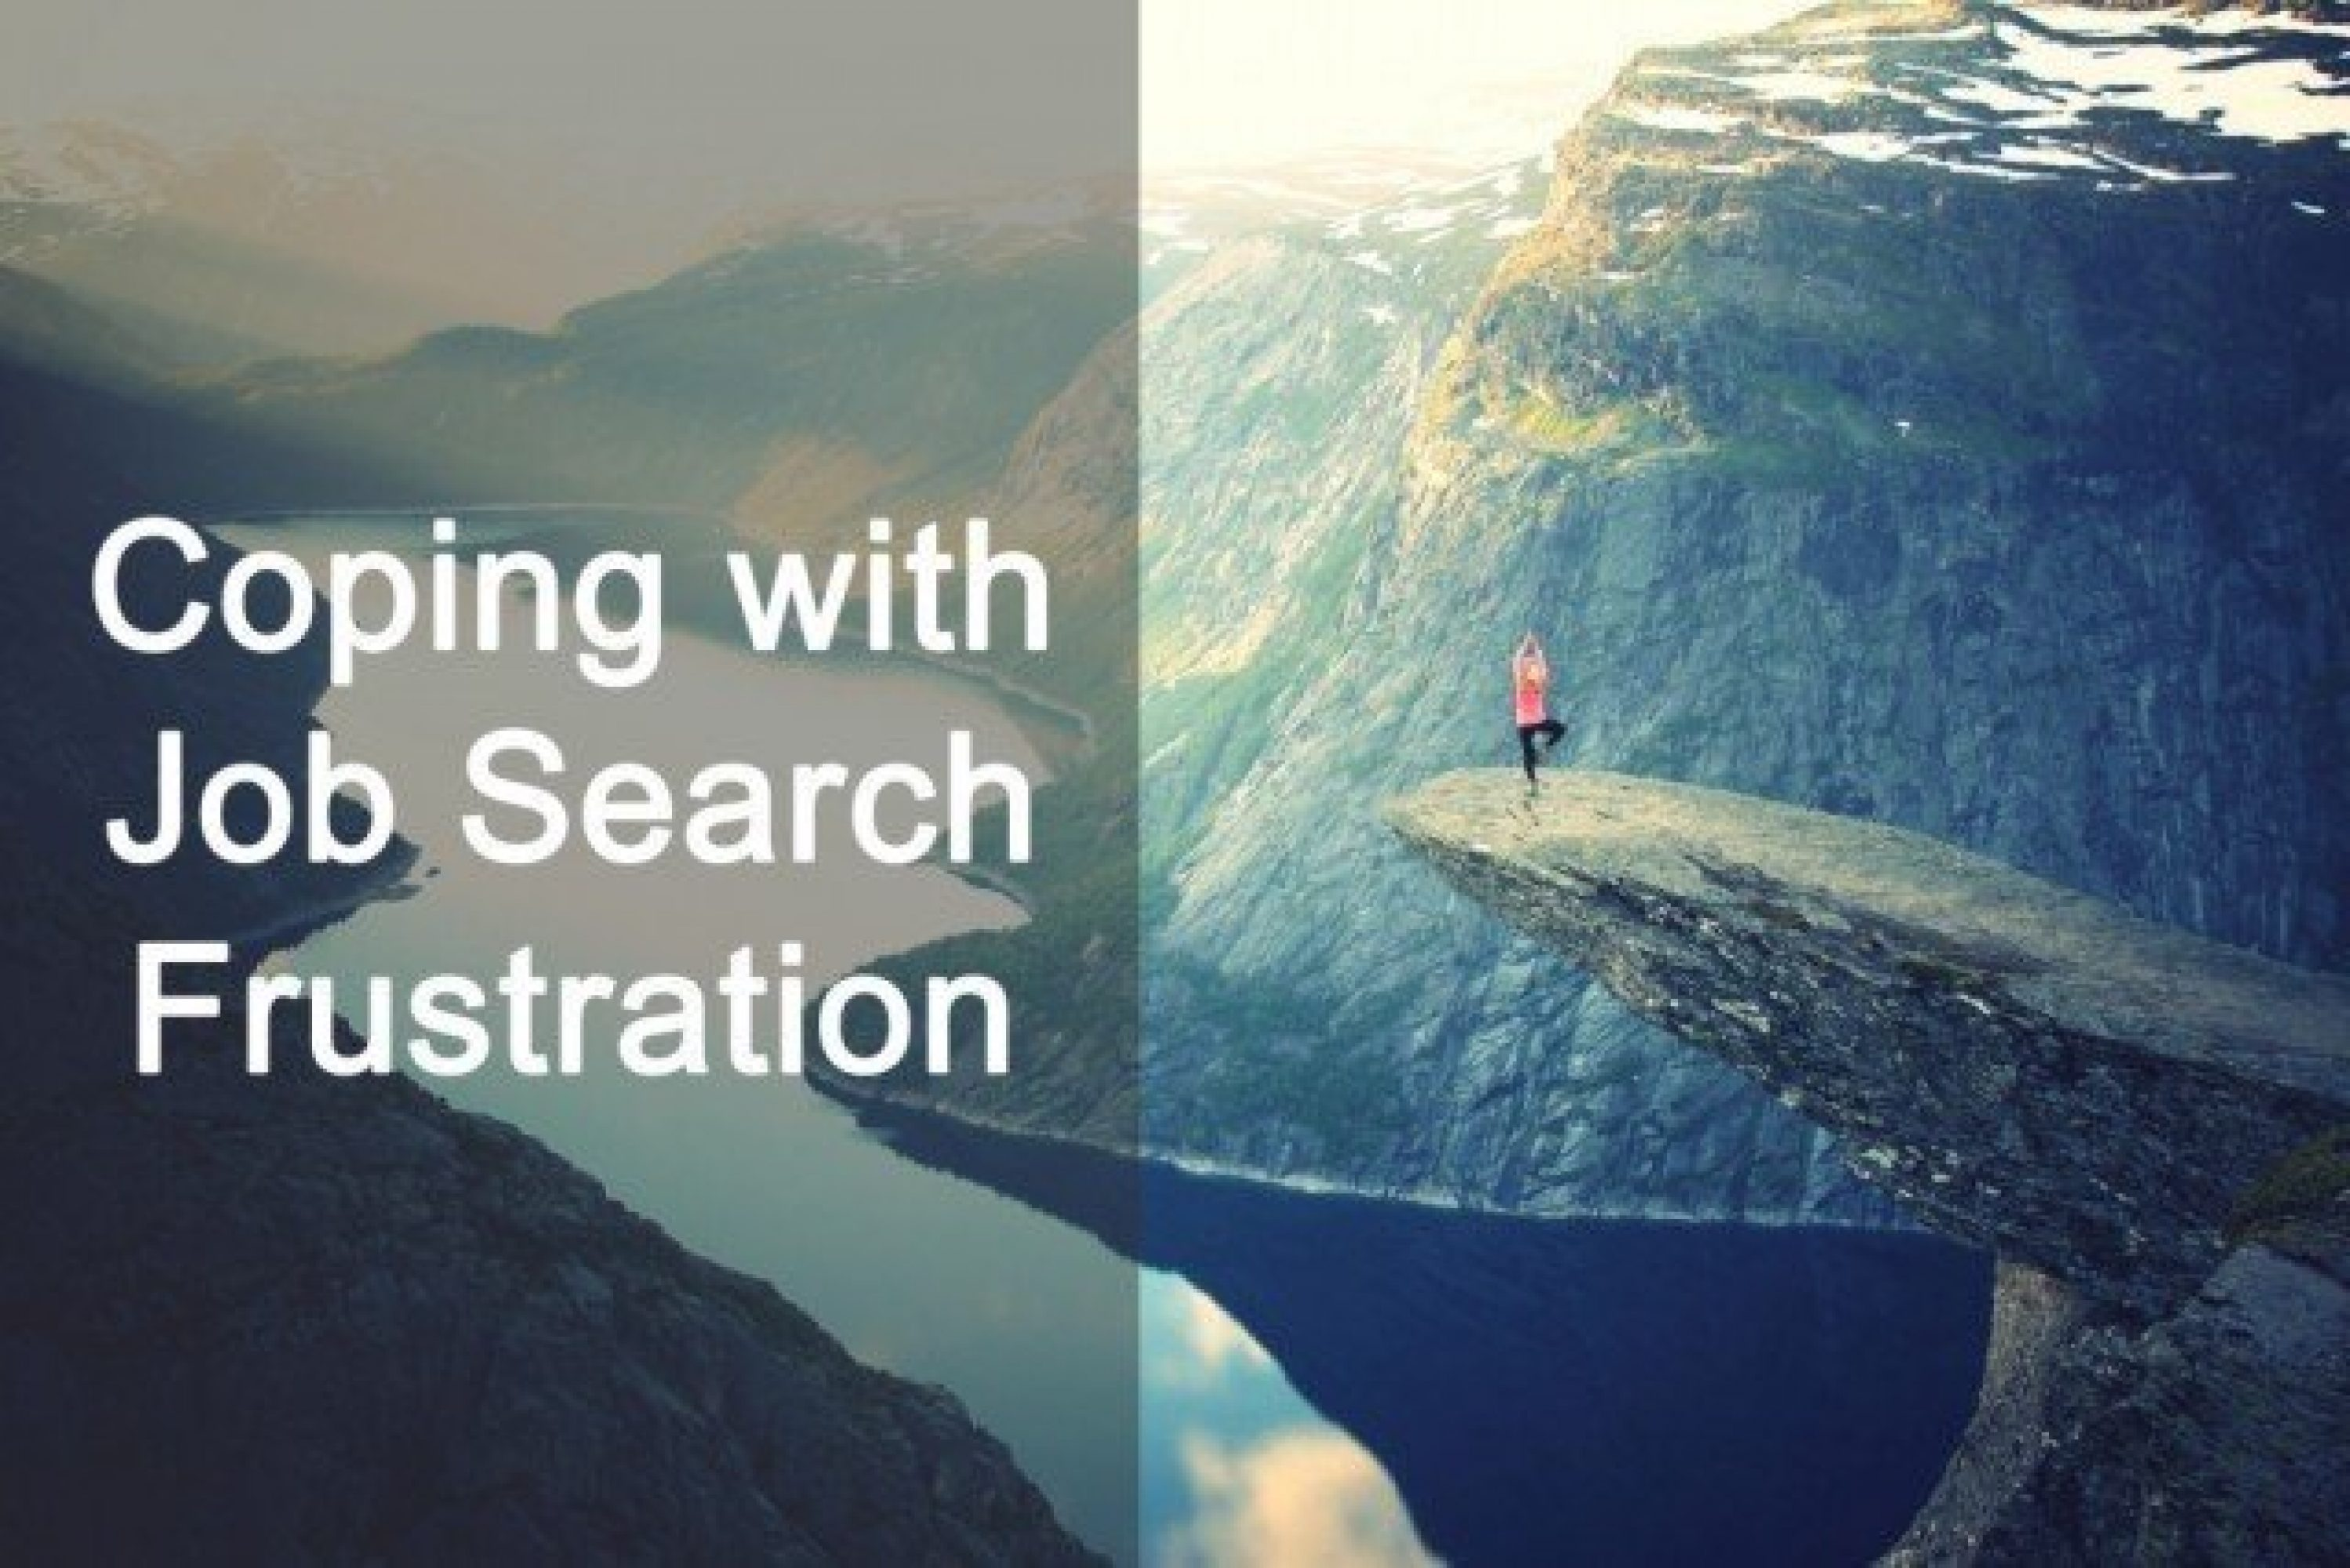 Coping with Job Search Frustration